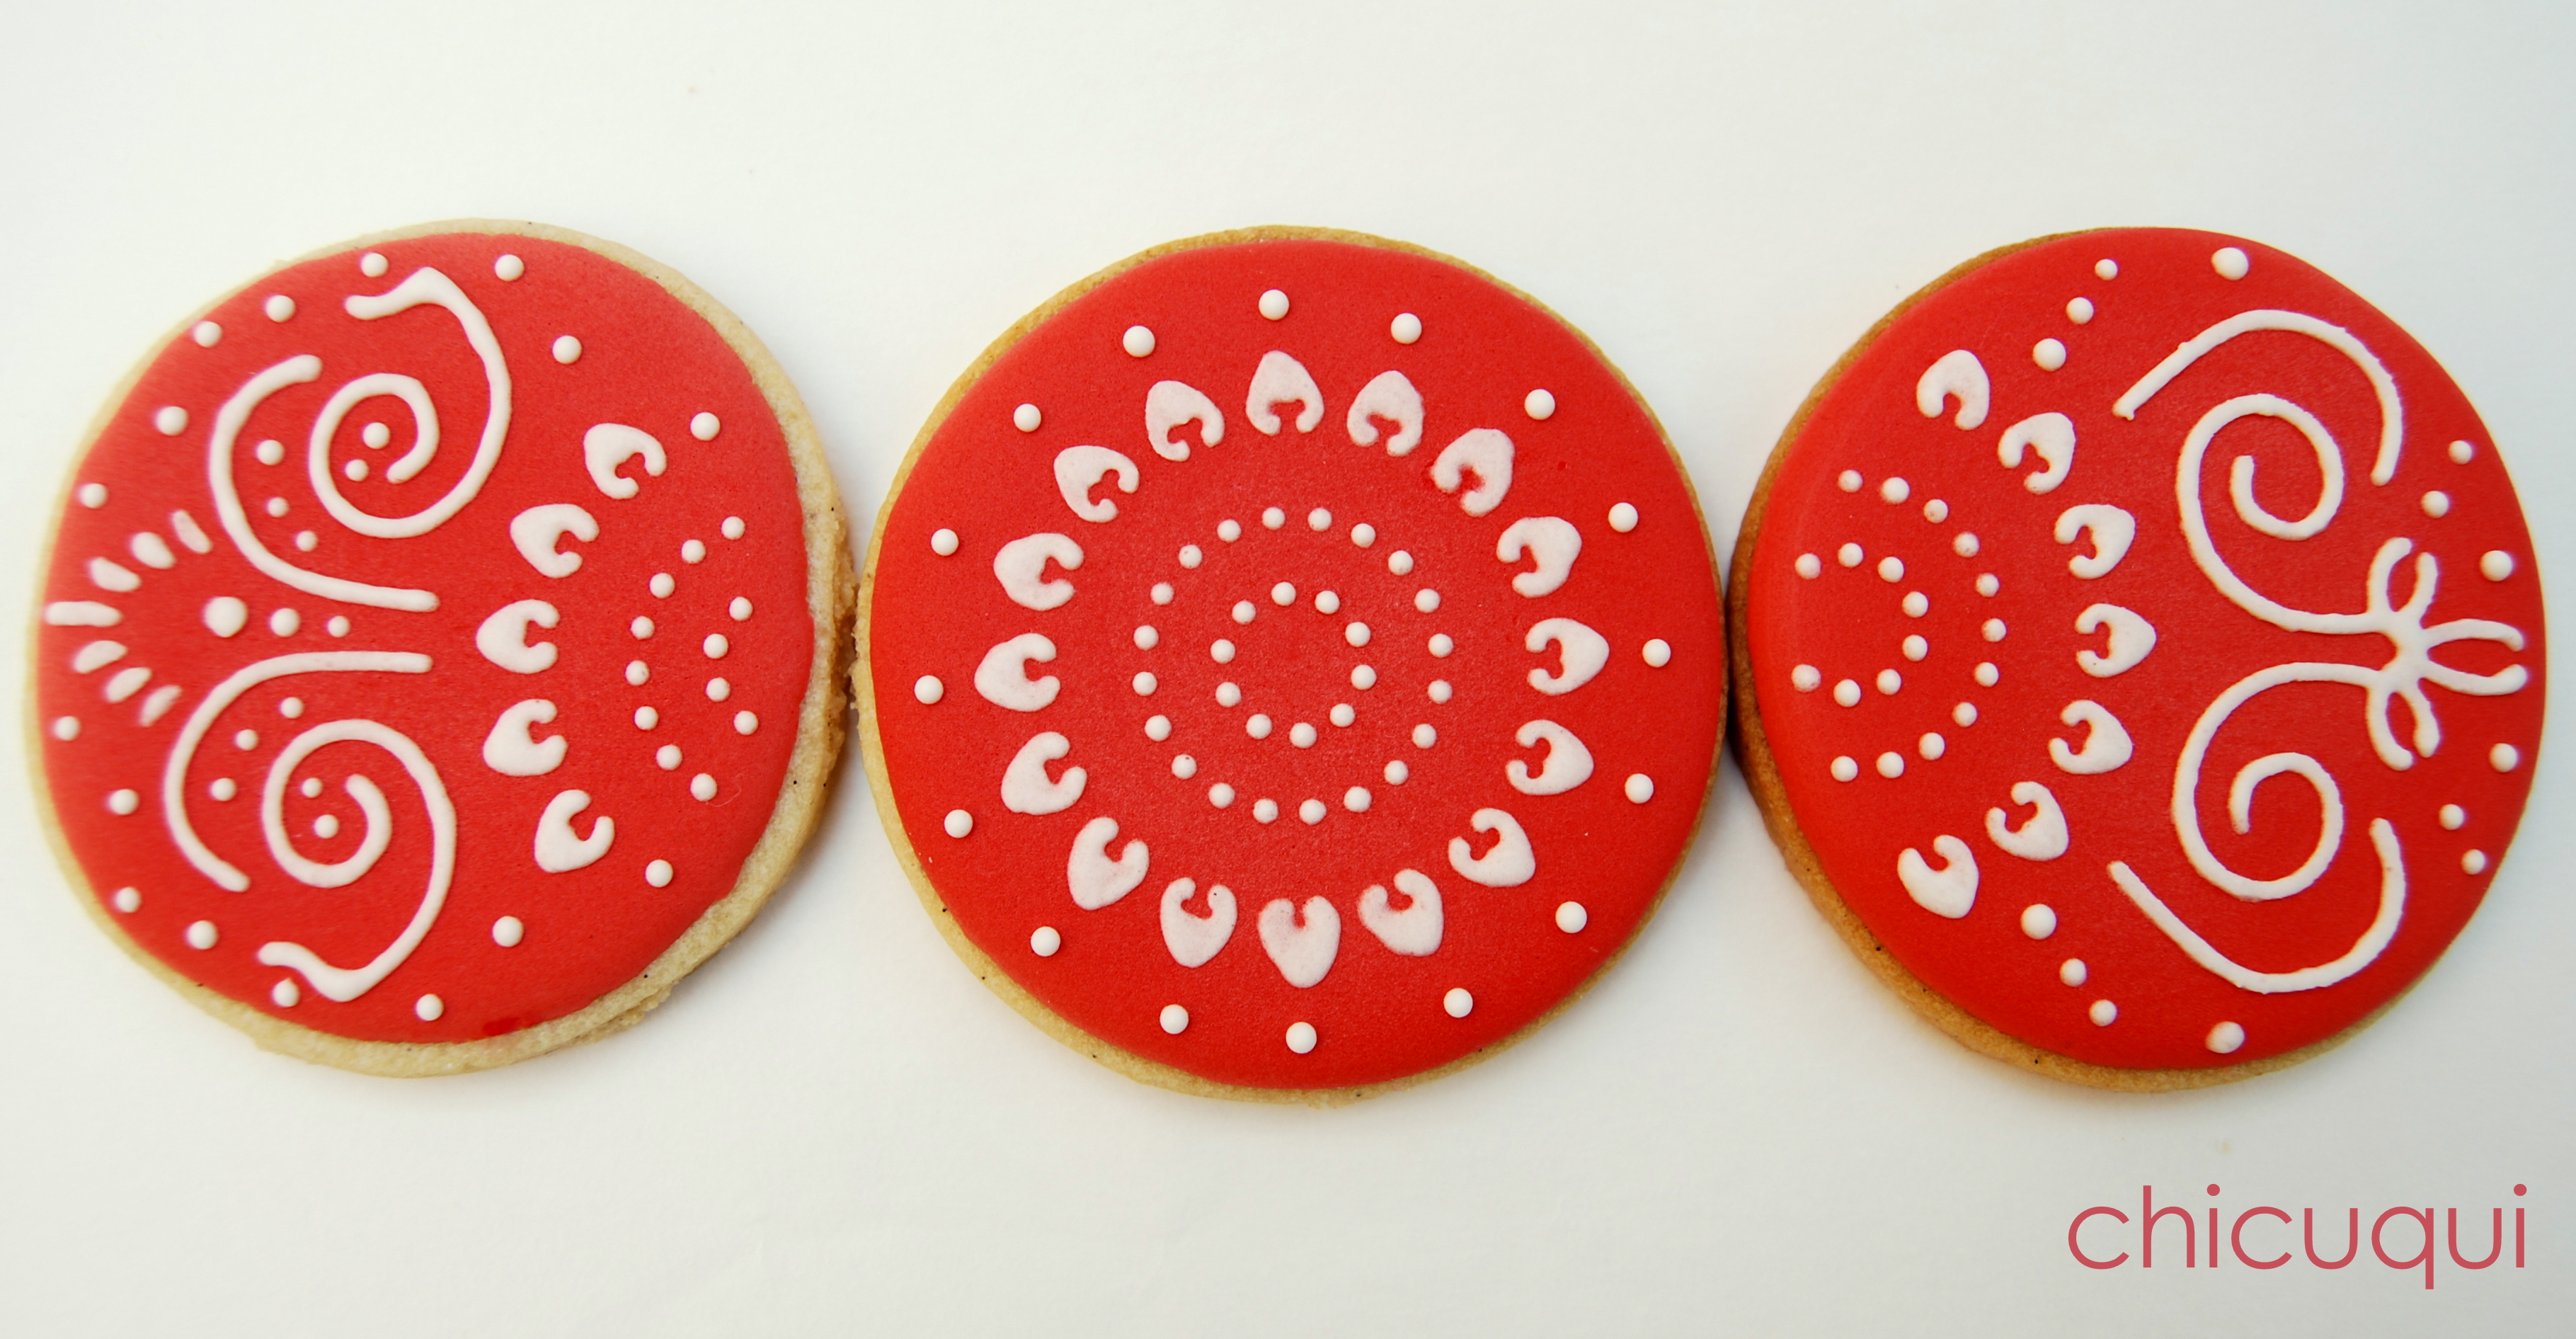 Tutorial De Galletas Decoradas Con Glasa Galletas Decoradas Con Stencils Para Tartas | Chicuqui